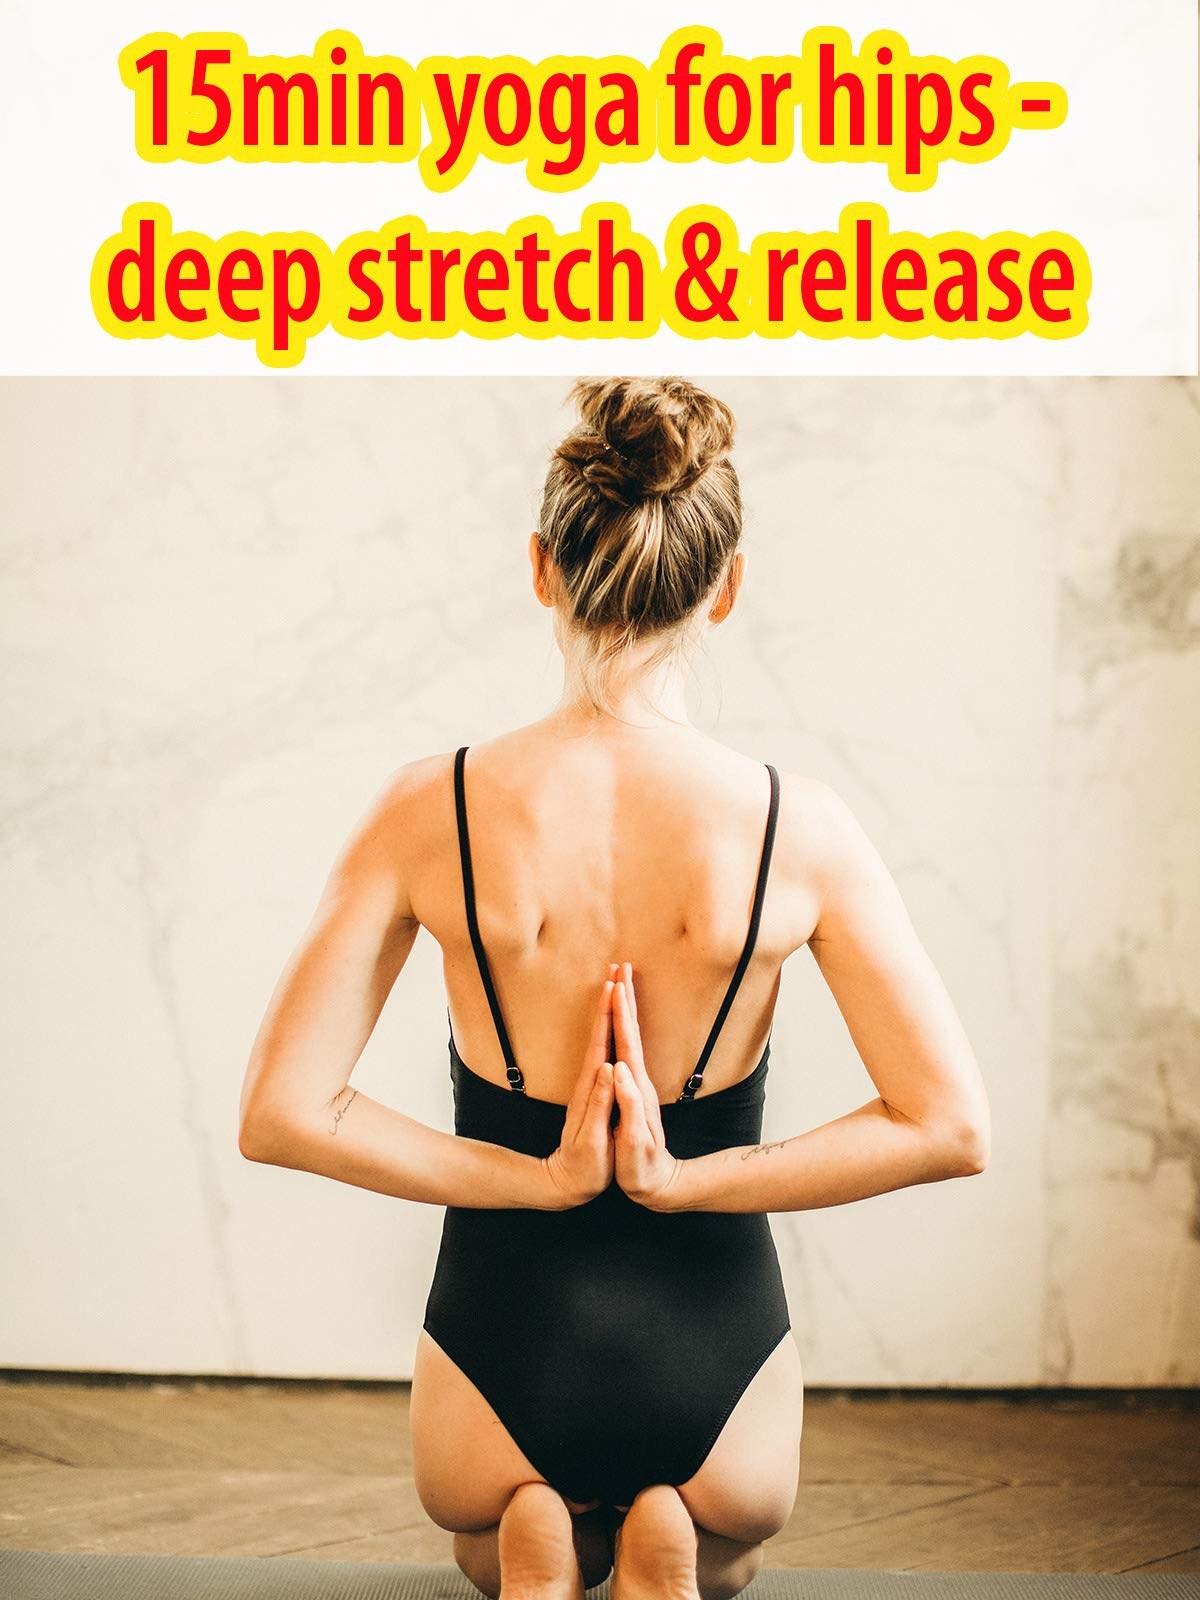 15min yoga for hips - deep stretch & release on Amazon Prime Video UK